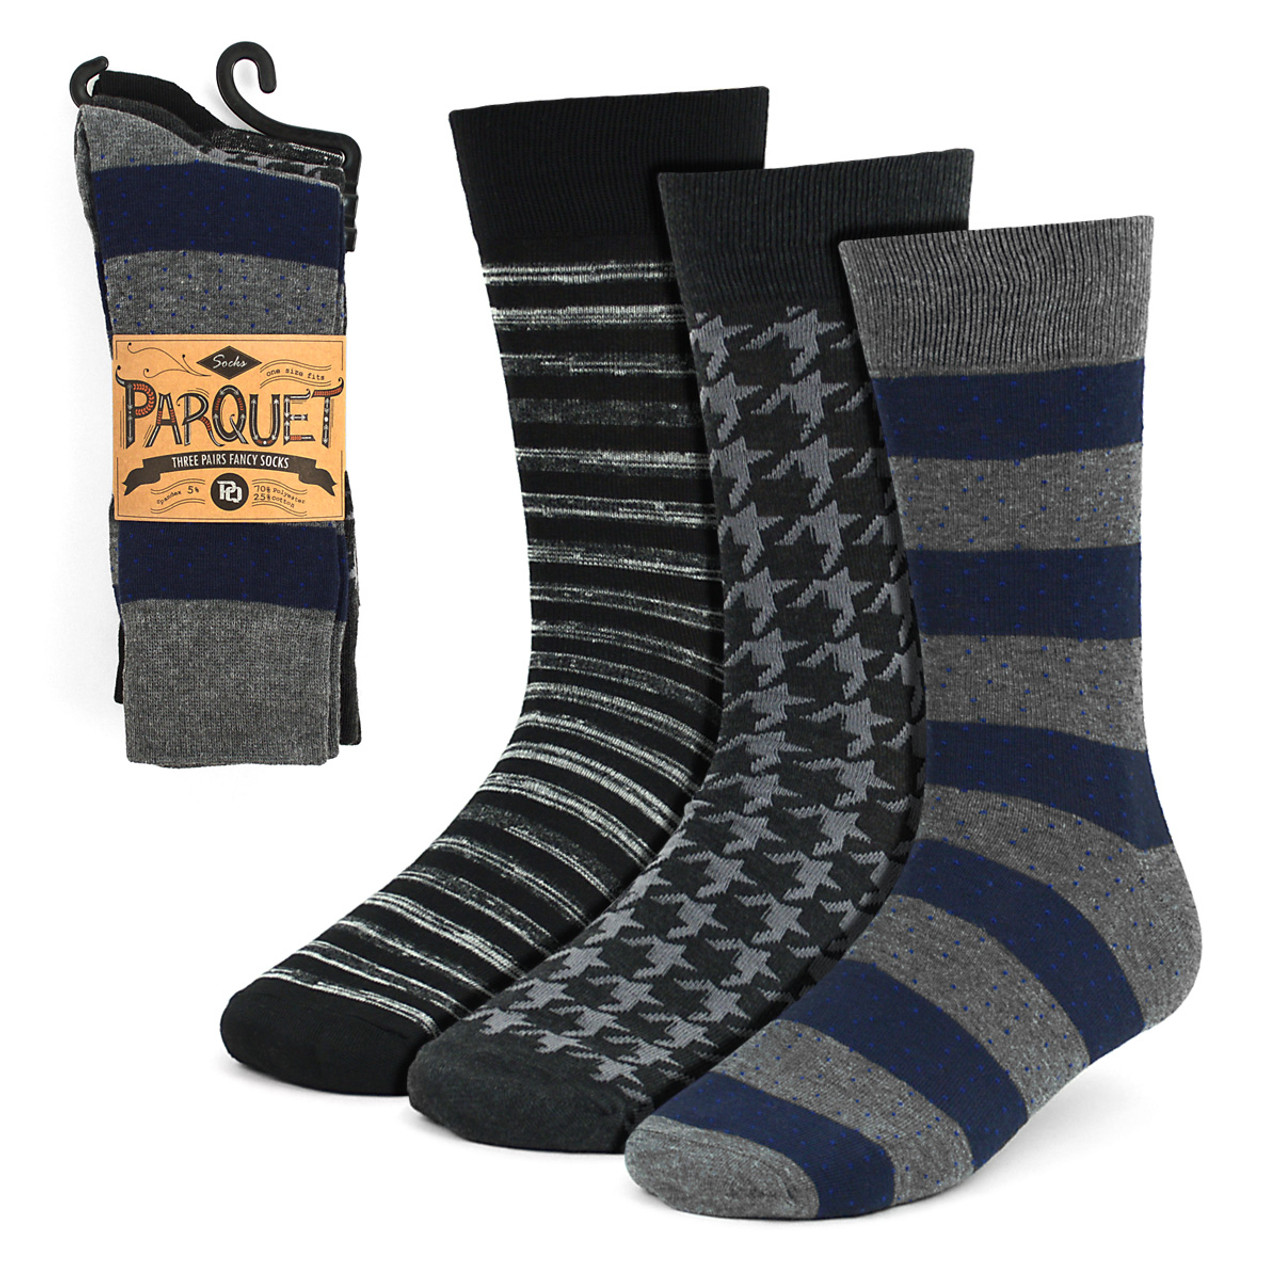 47e463f613e7 3pcs (3 Pairs) Men's Gray Striped Fancy Dress Socks 3PKS-DRSY7